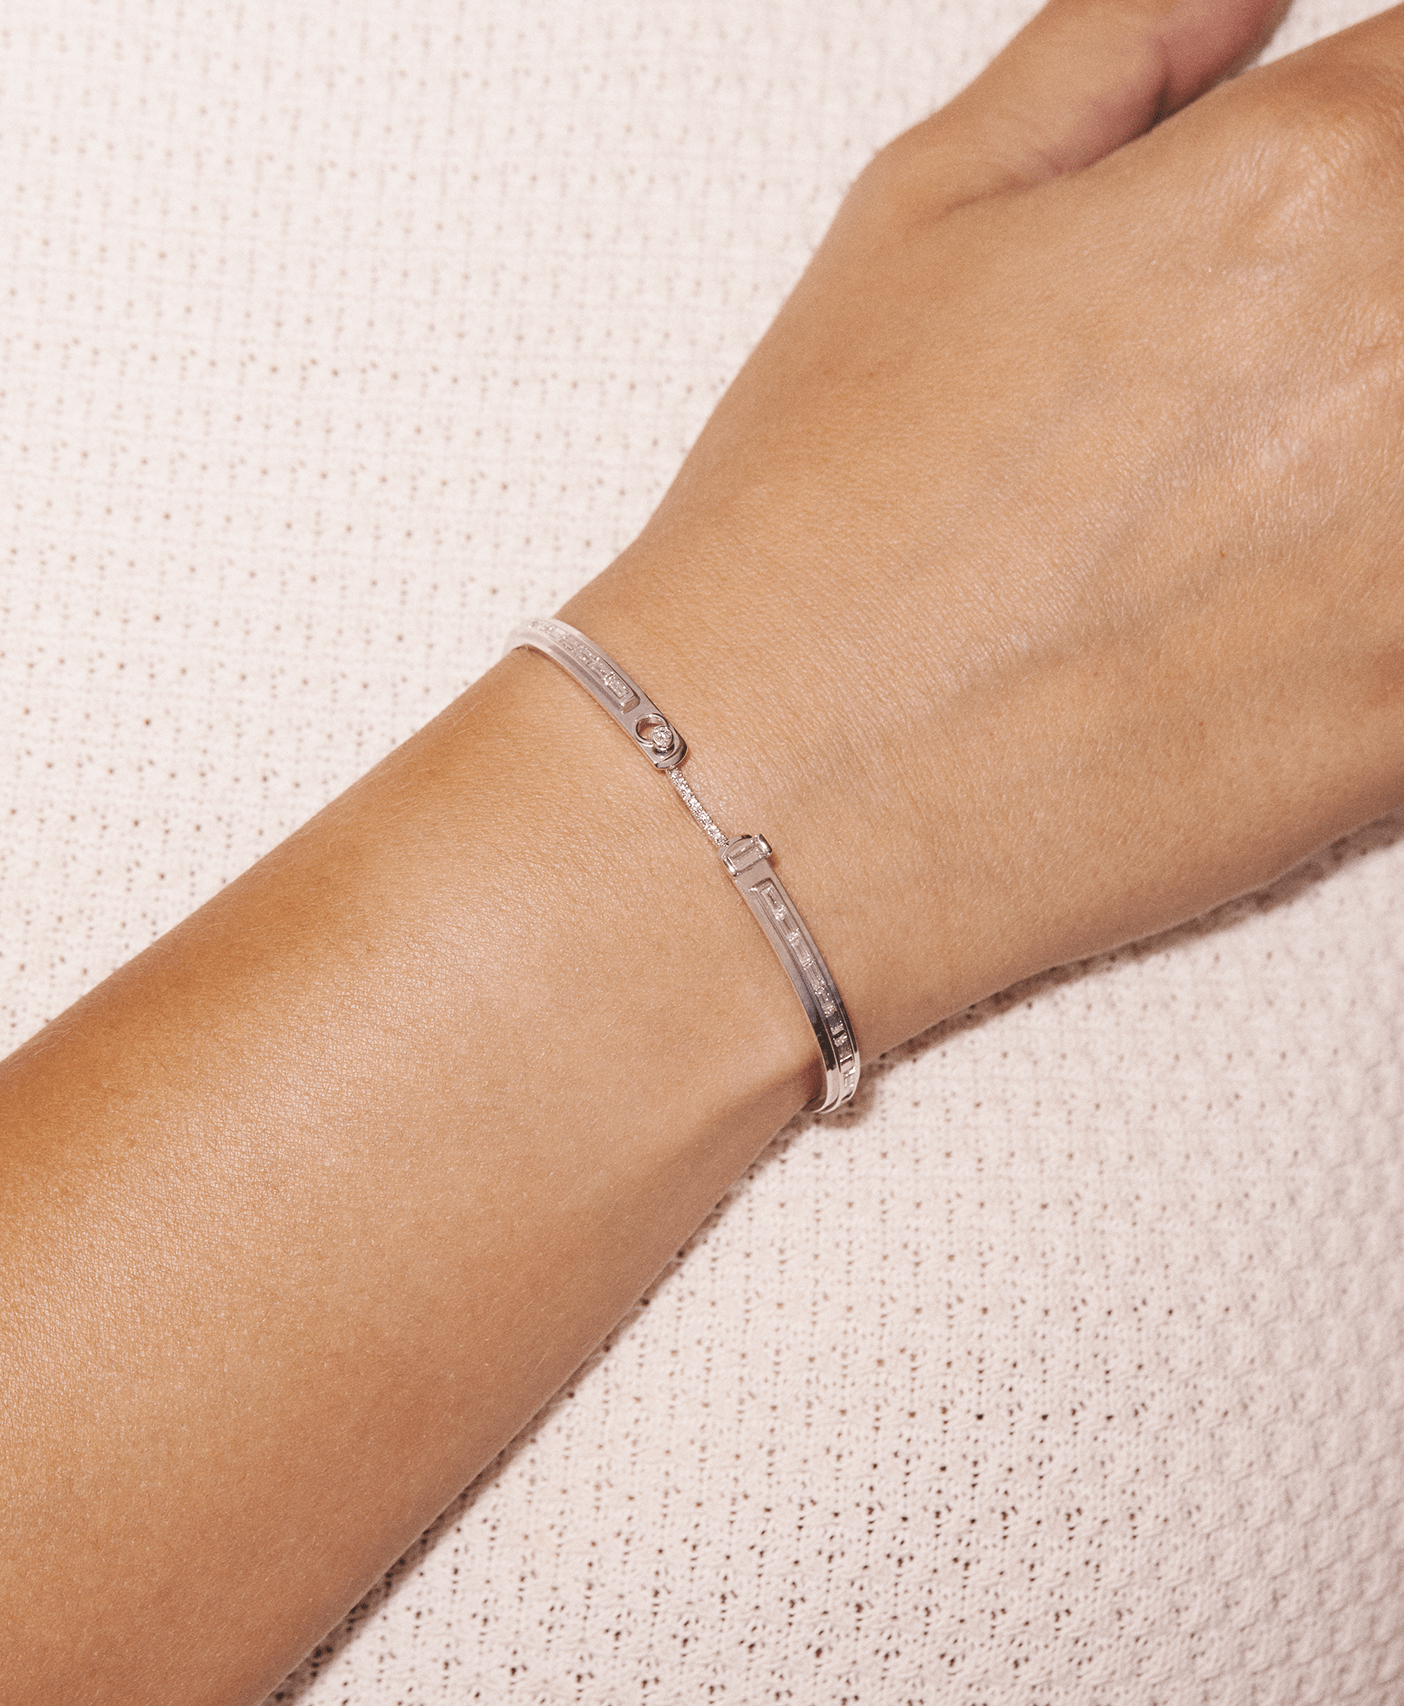 My Best Friend's Wedding Mood Bangle: Discover Luxury Fine Jewelry | Nouvel Heritage